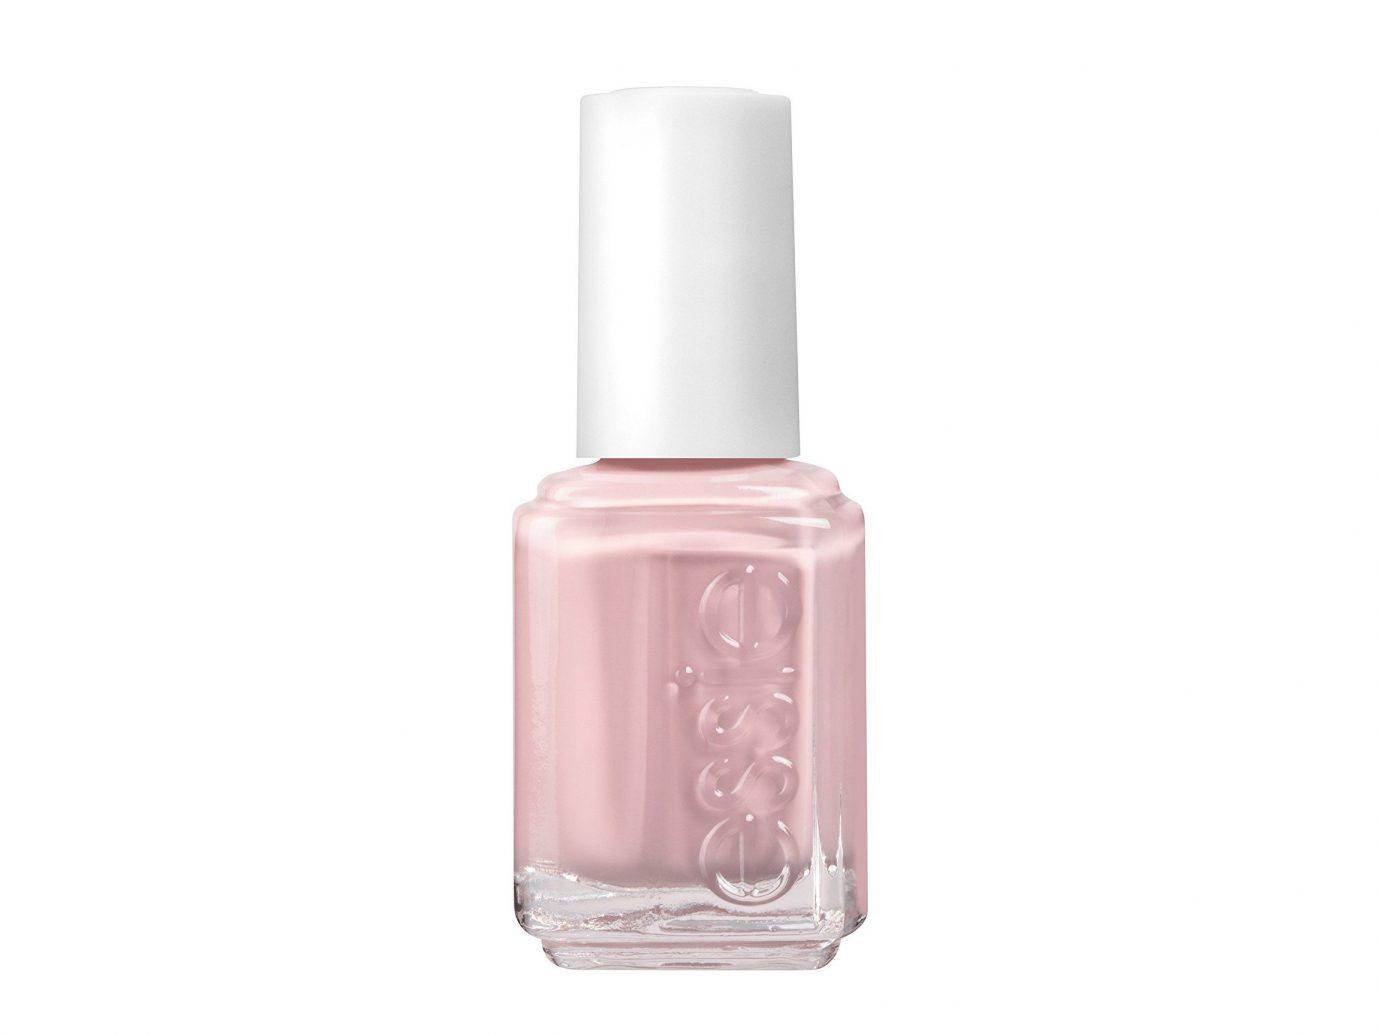 Beauty toiletry nail polish nail care pink product cosmetics glass bottle bottle hand plastic